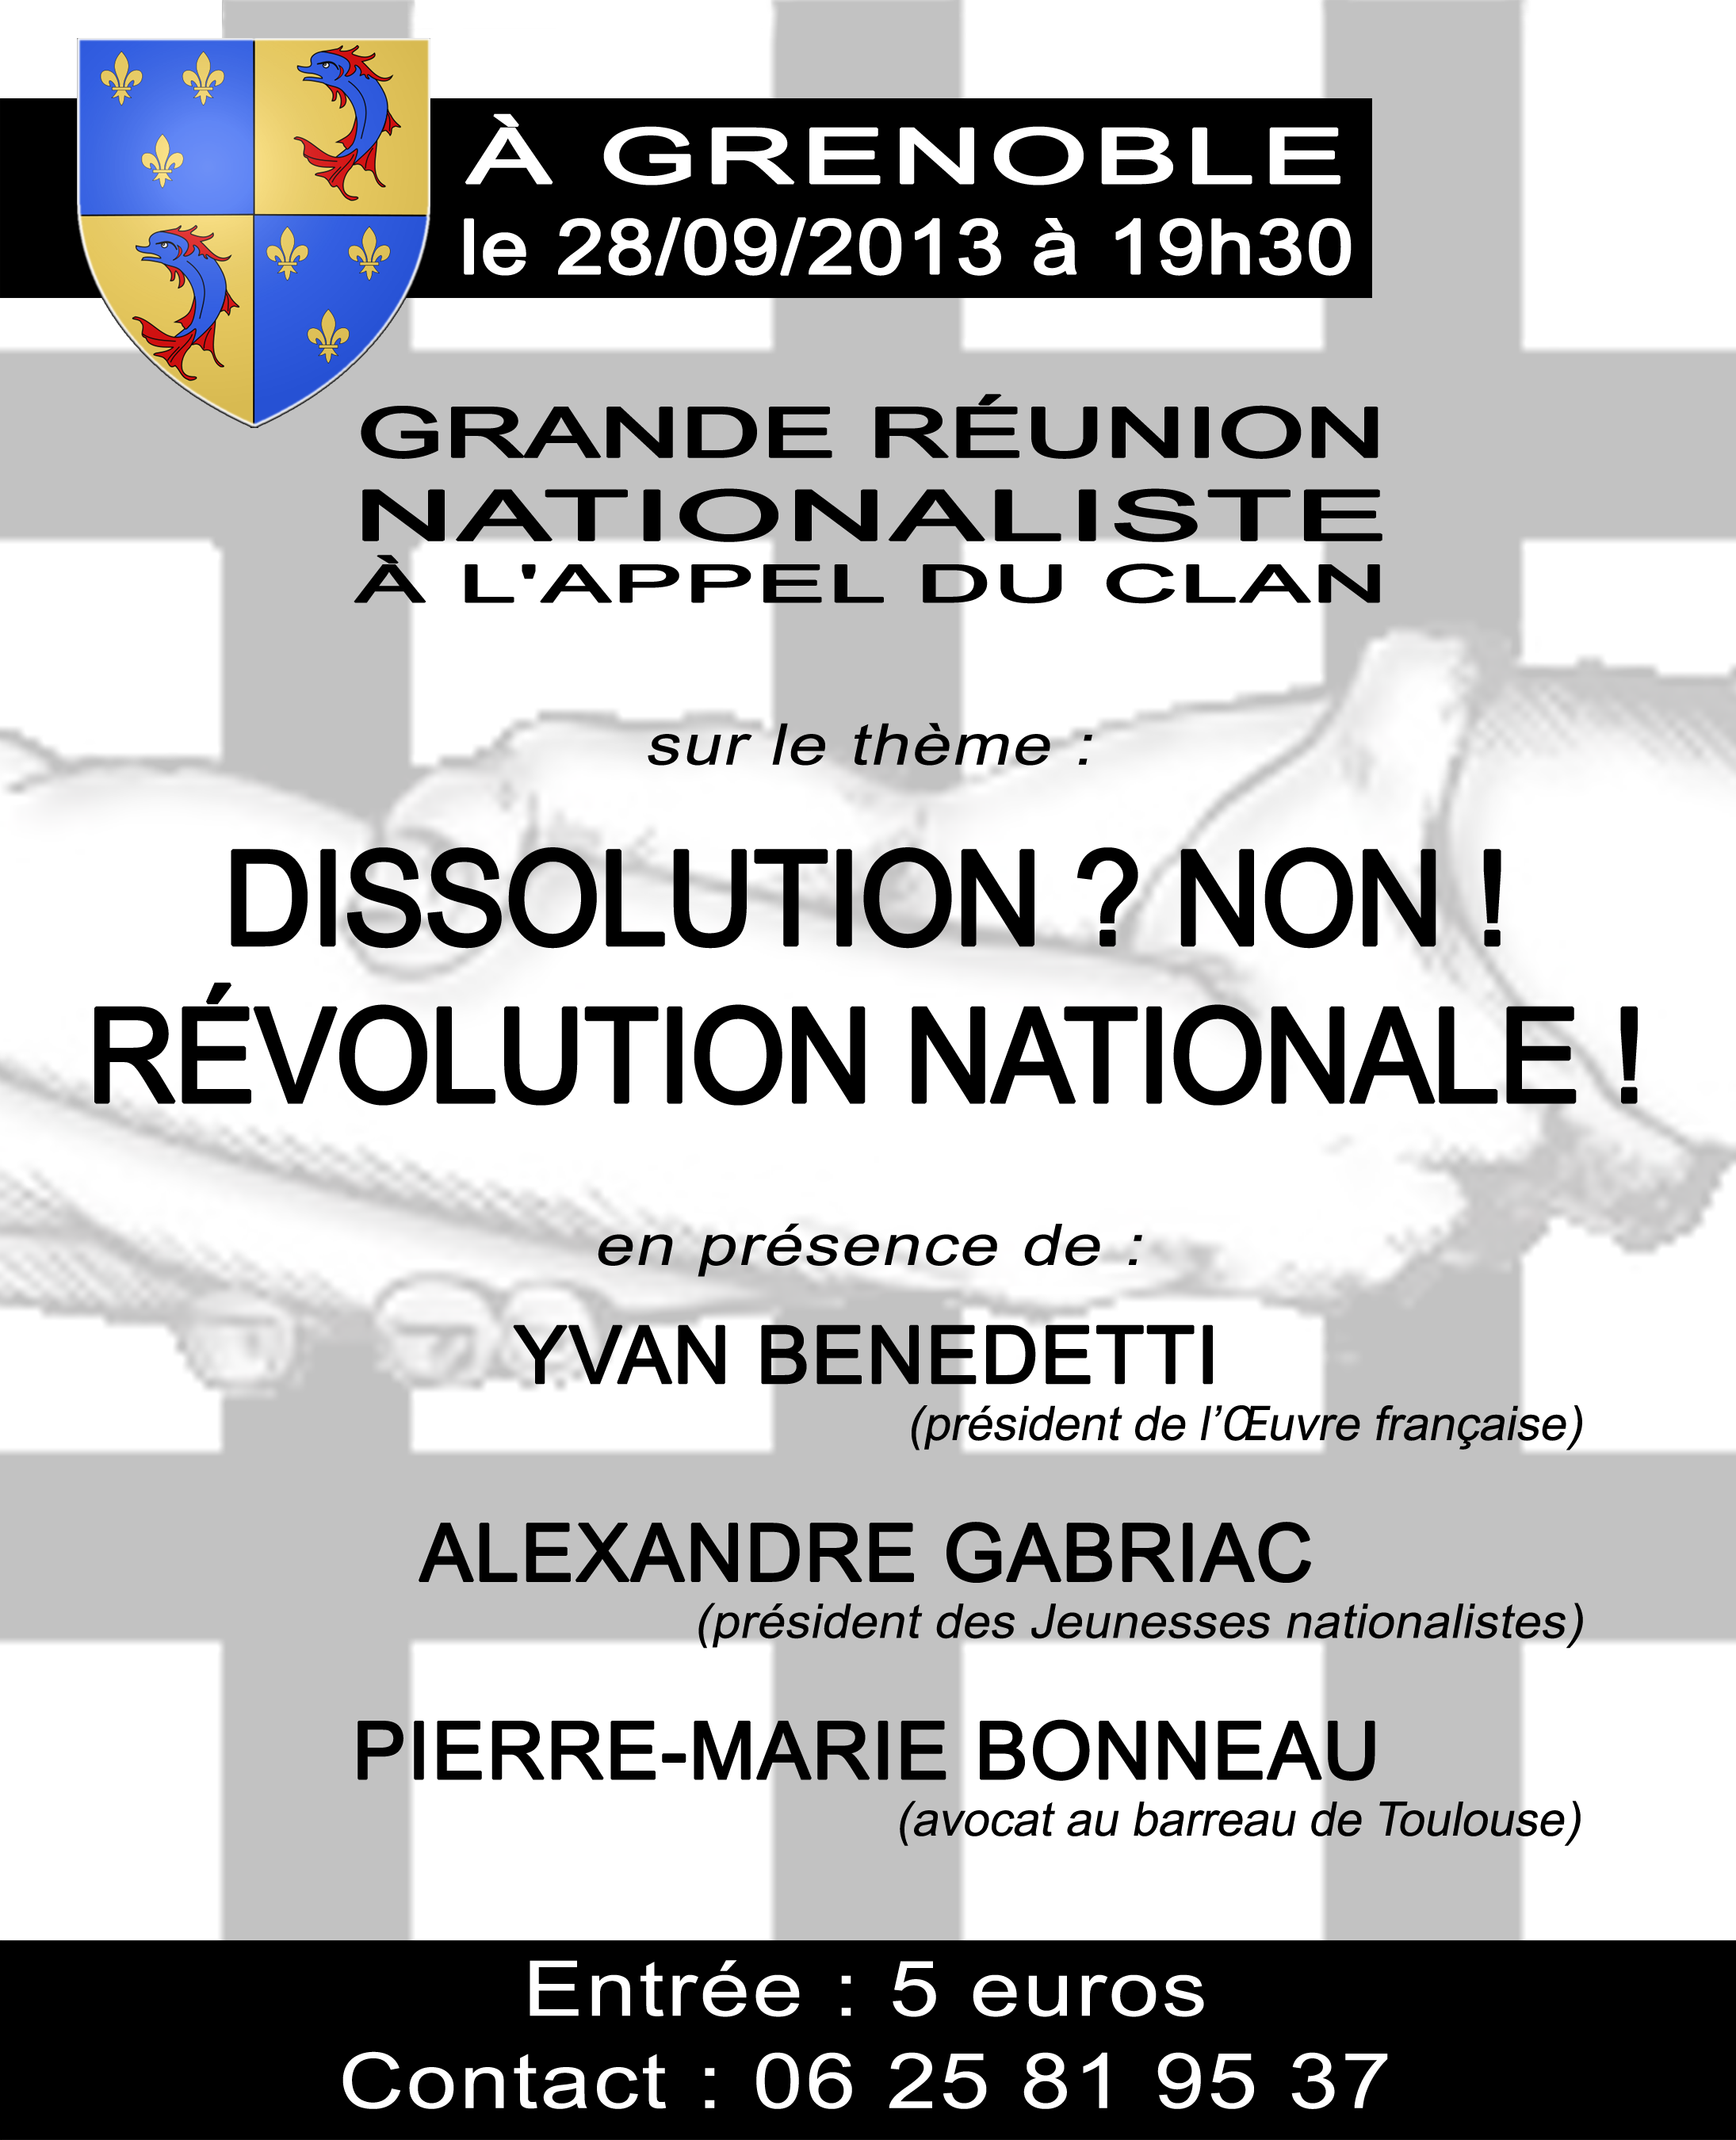 reunion-grenoble-3-neo